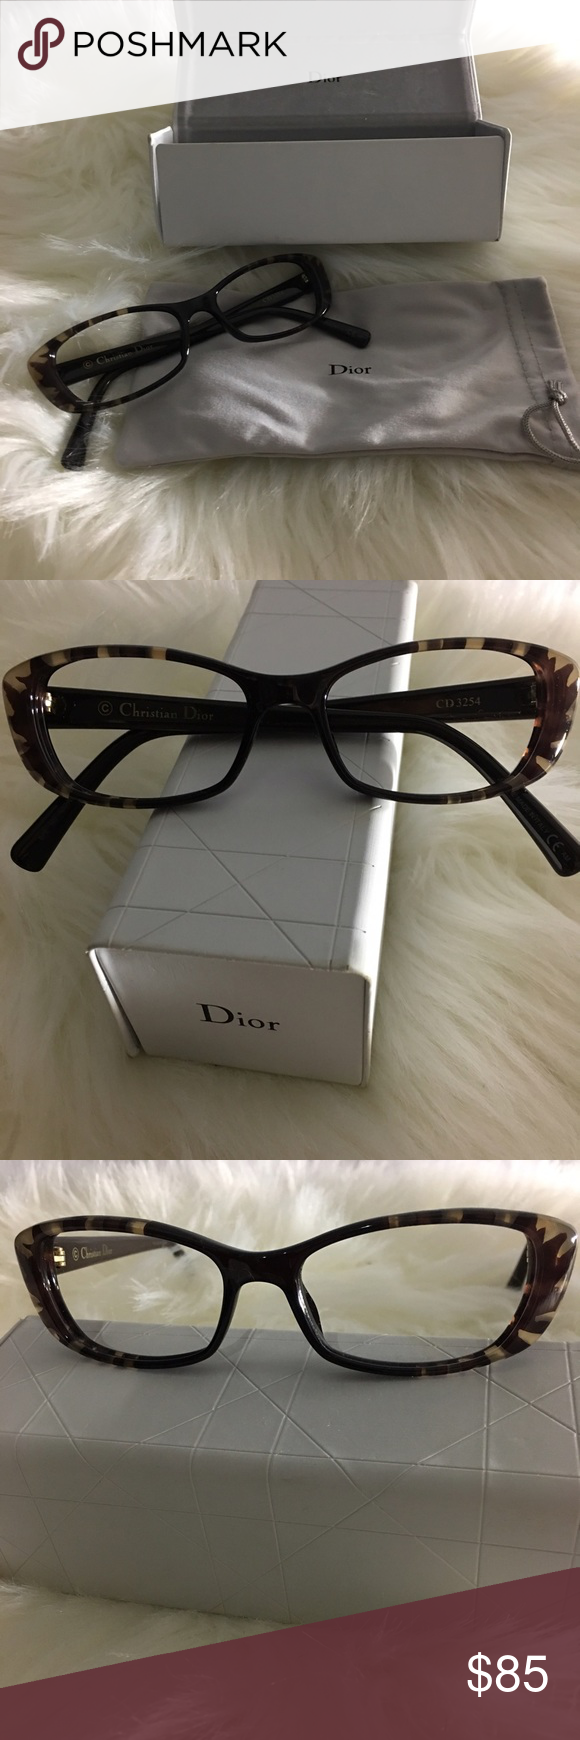 b247c561963 Christian Dior prescription frames glasses Christian Dior CD3254 color brown  flower is designed for women.